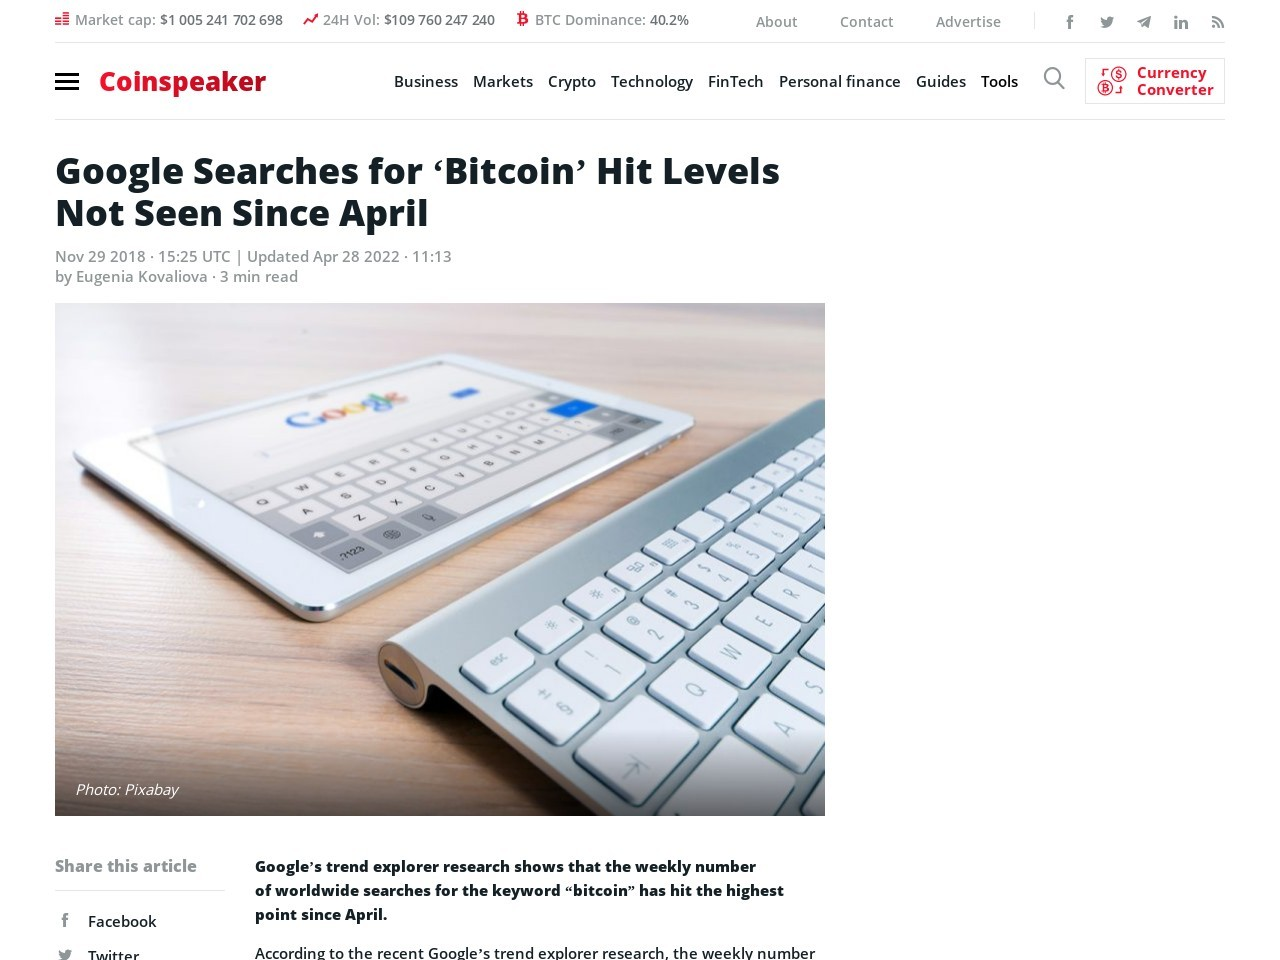 Google Searches for 'Bitcoin' Hit Levels Not Seen Since April